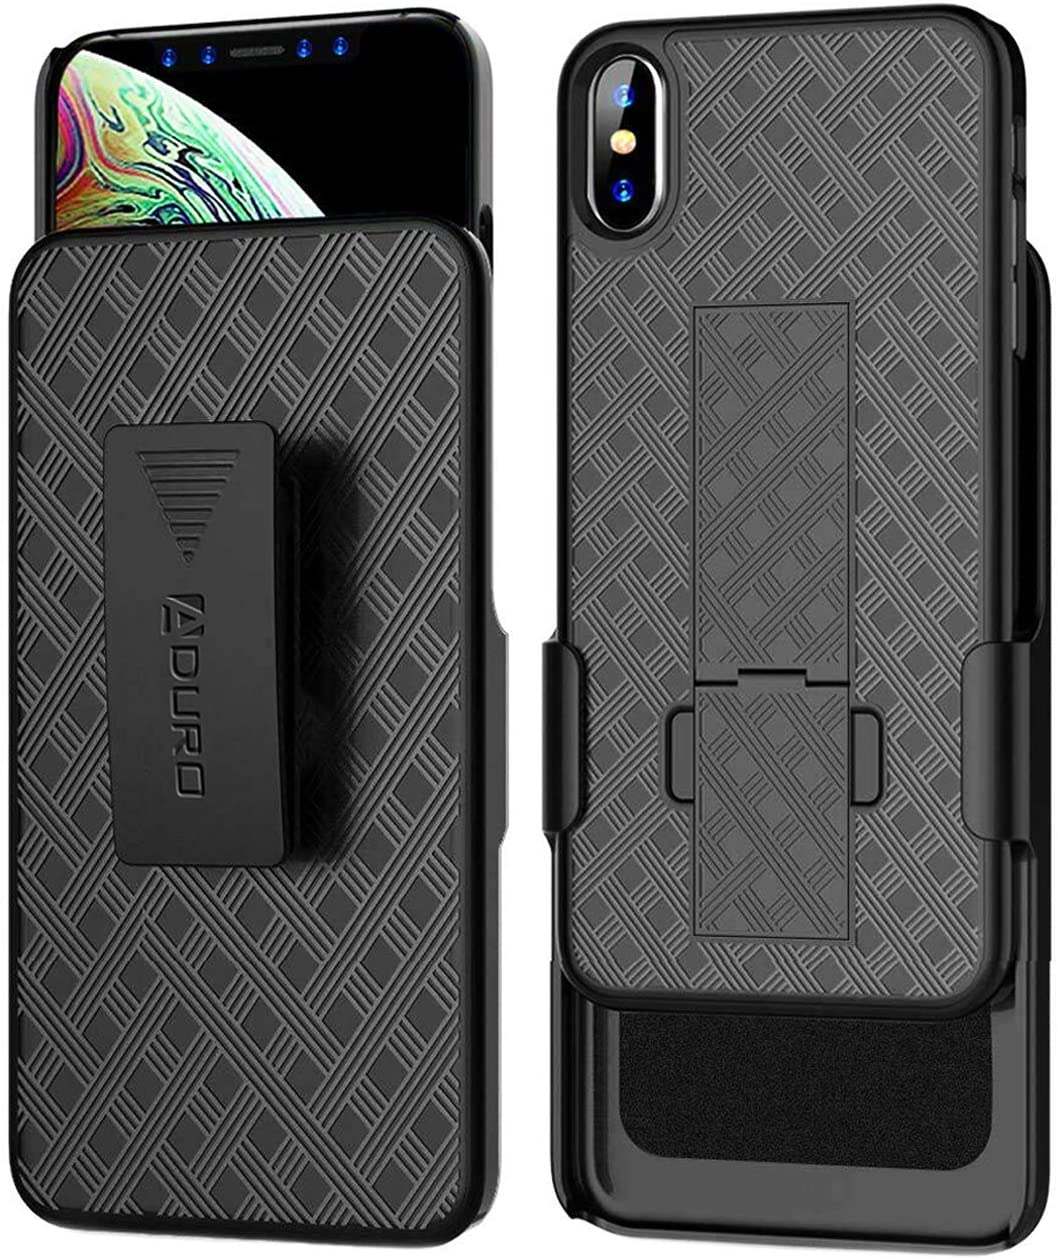 Aduro iPhone Xs Max Holster Case, Combo Shell & Holster Case - Super Slim Shell Case with Built-in Kickstand, Swivel Belt Clip Holster for Apple iPhone Xs Max (2018/2019)